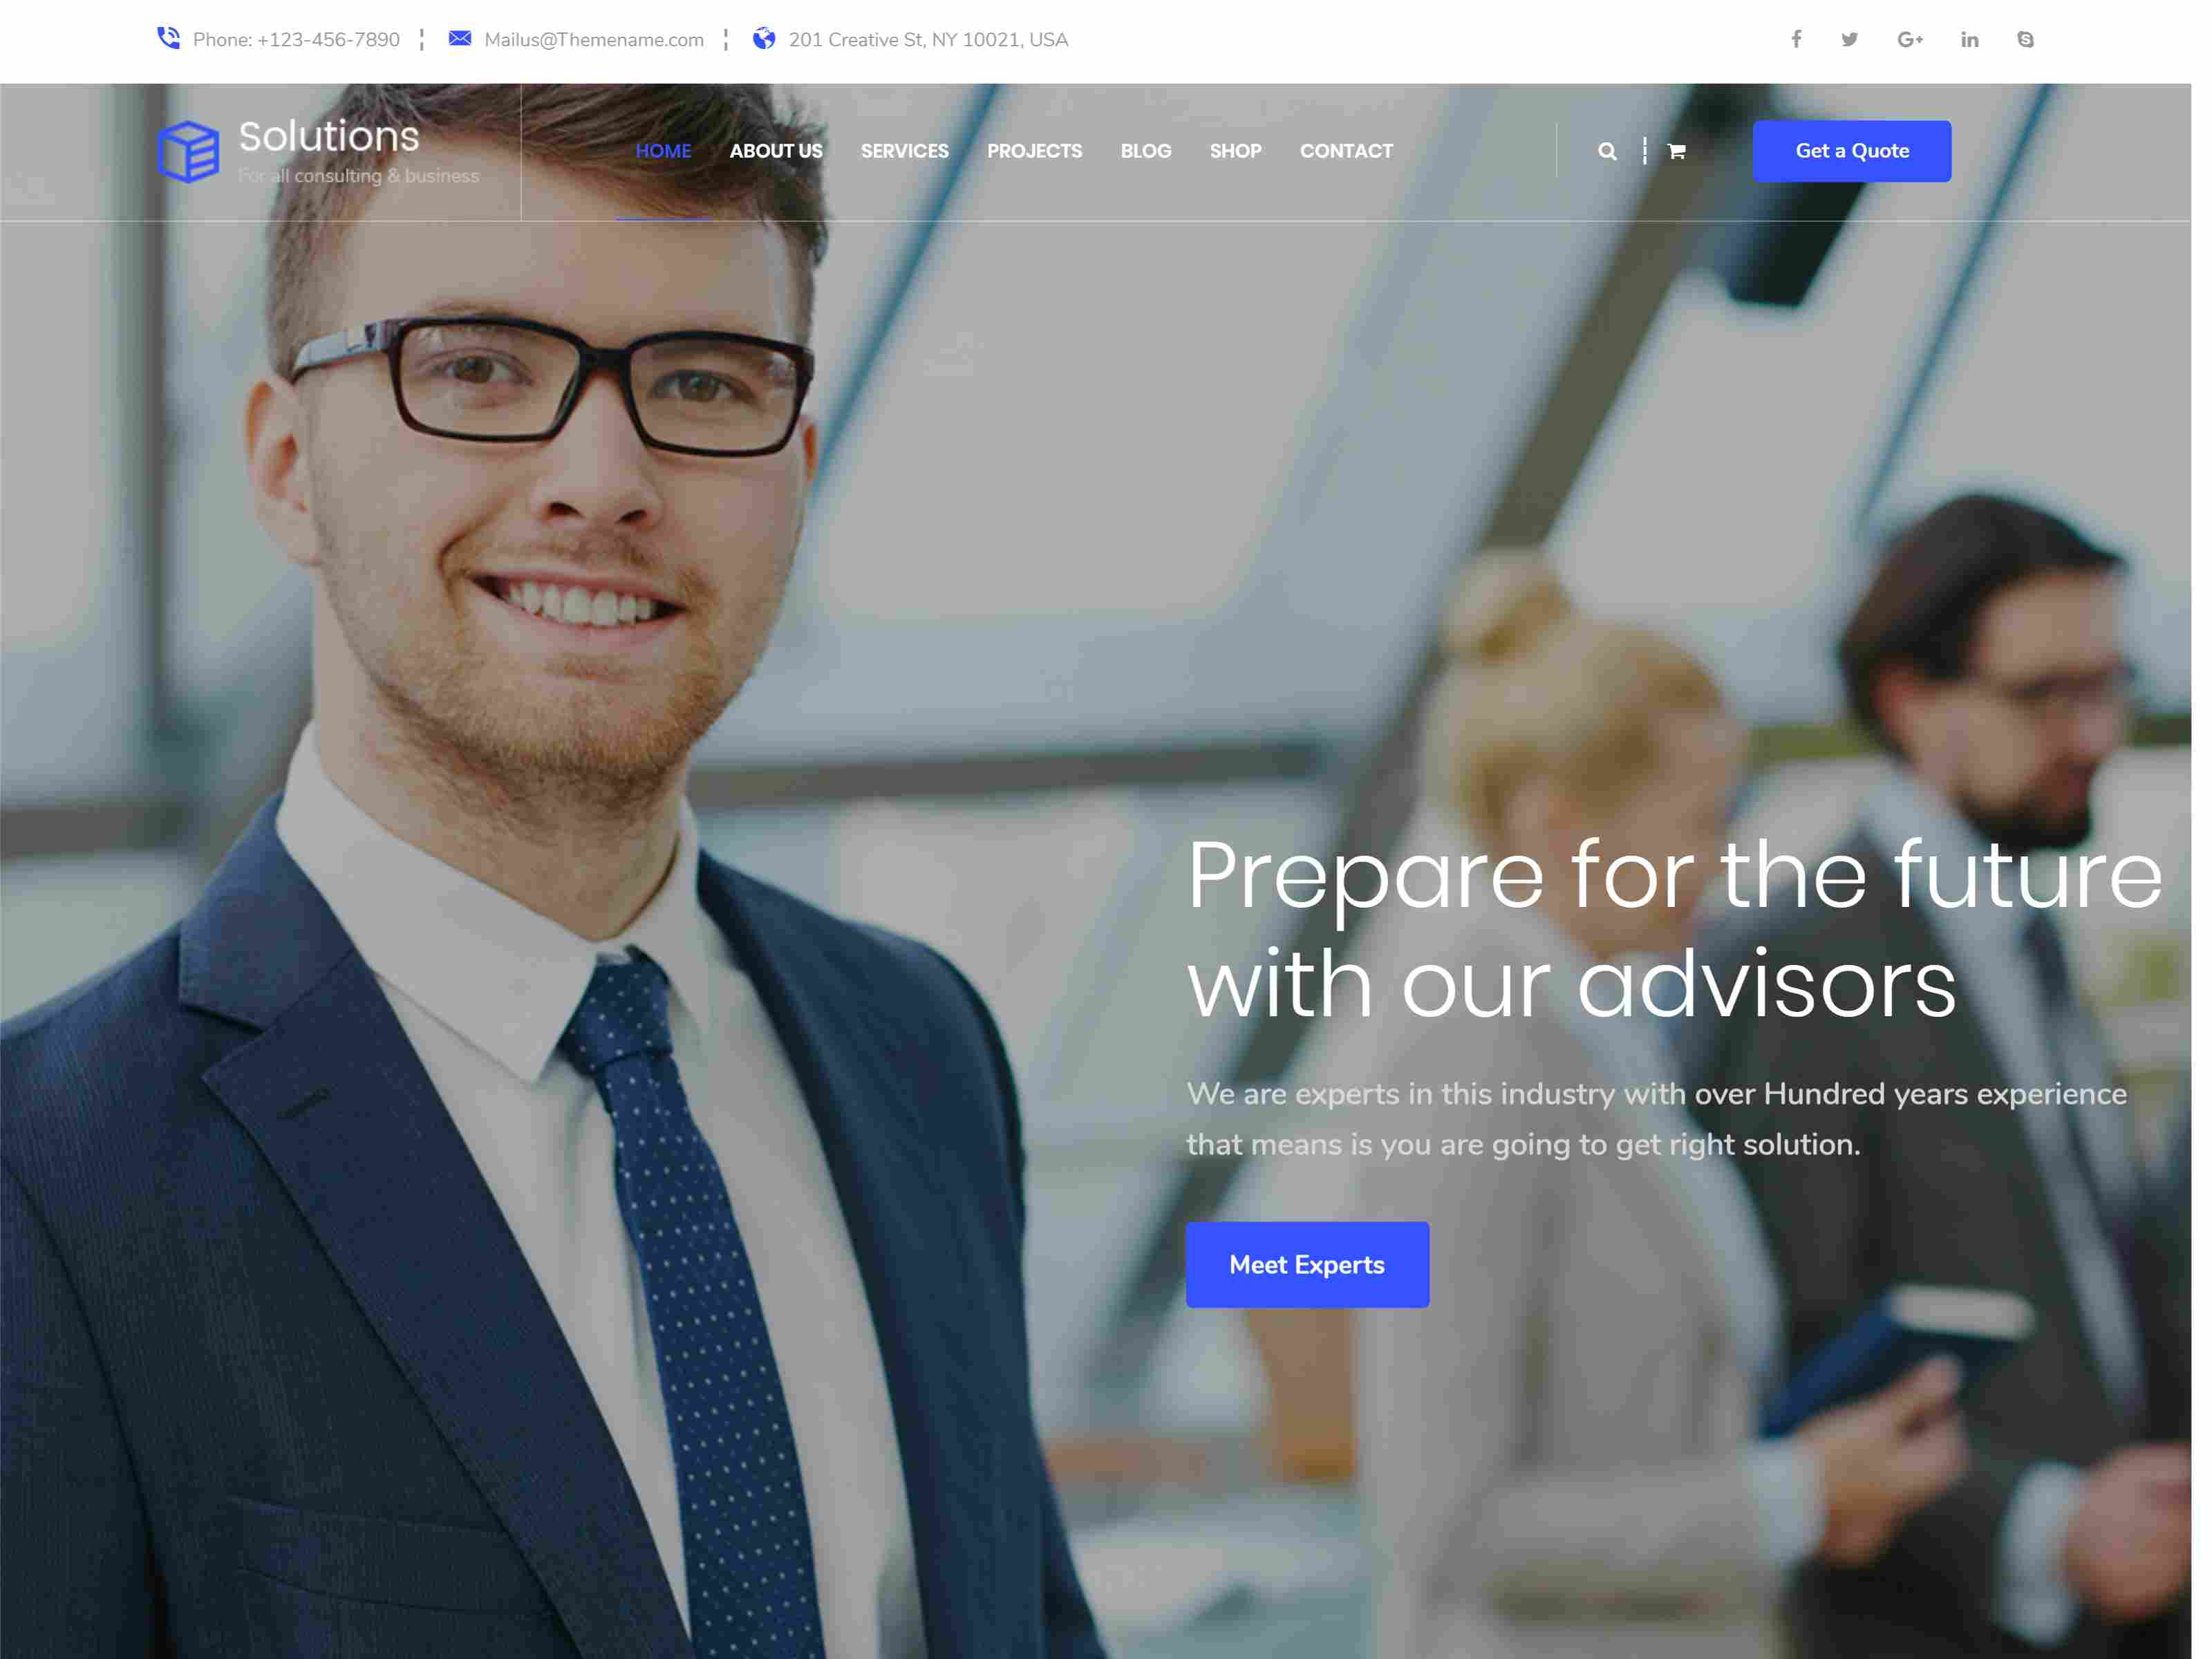 Solutions - Business Consulting Joomla Template